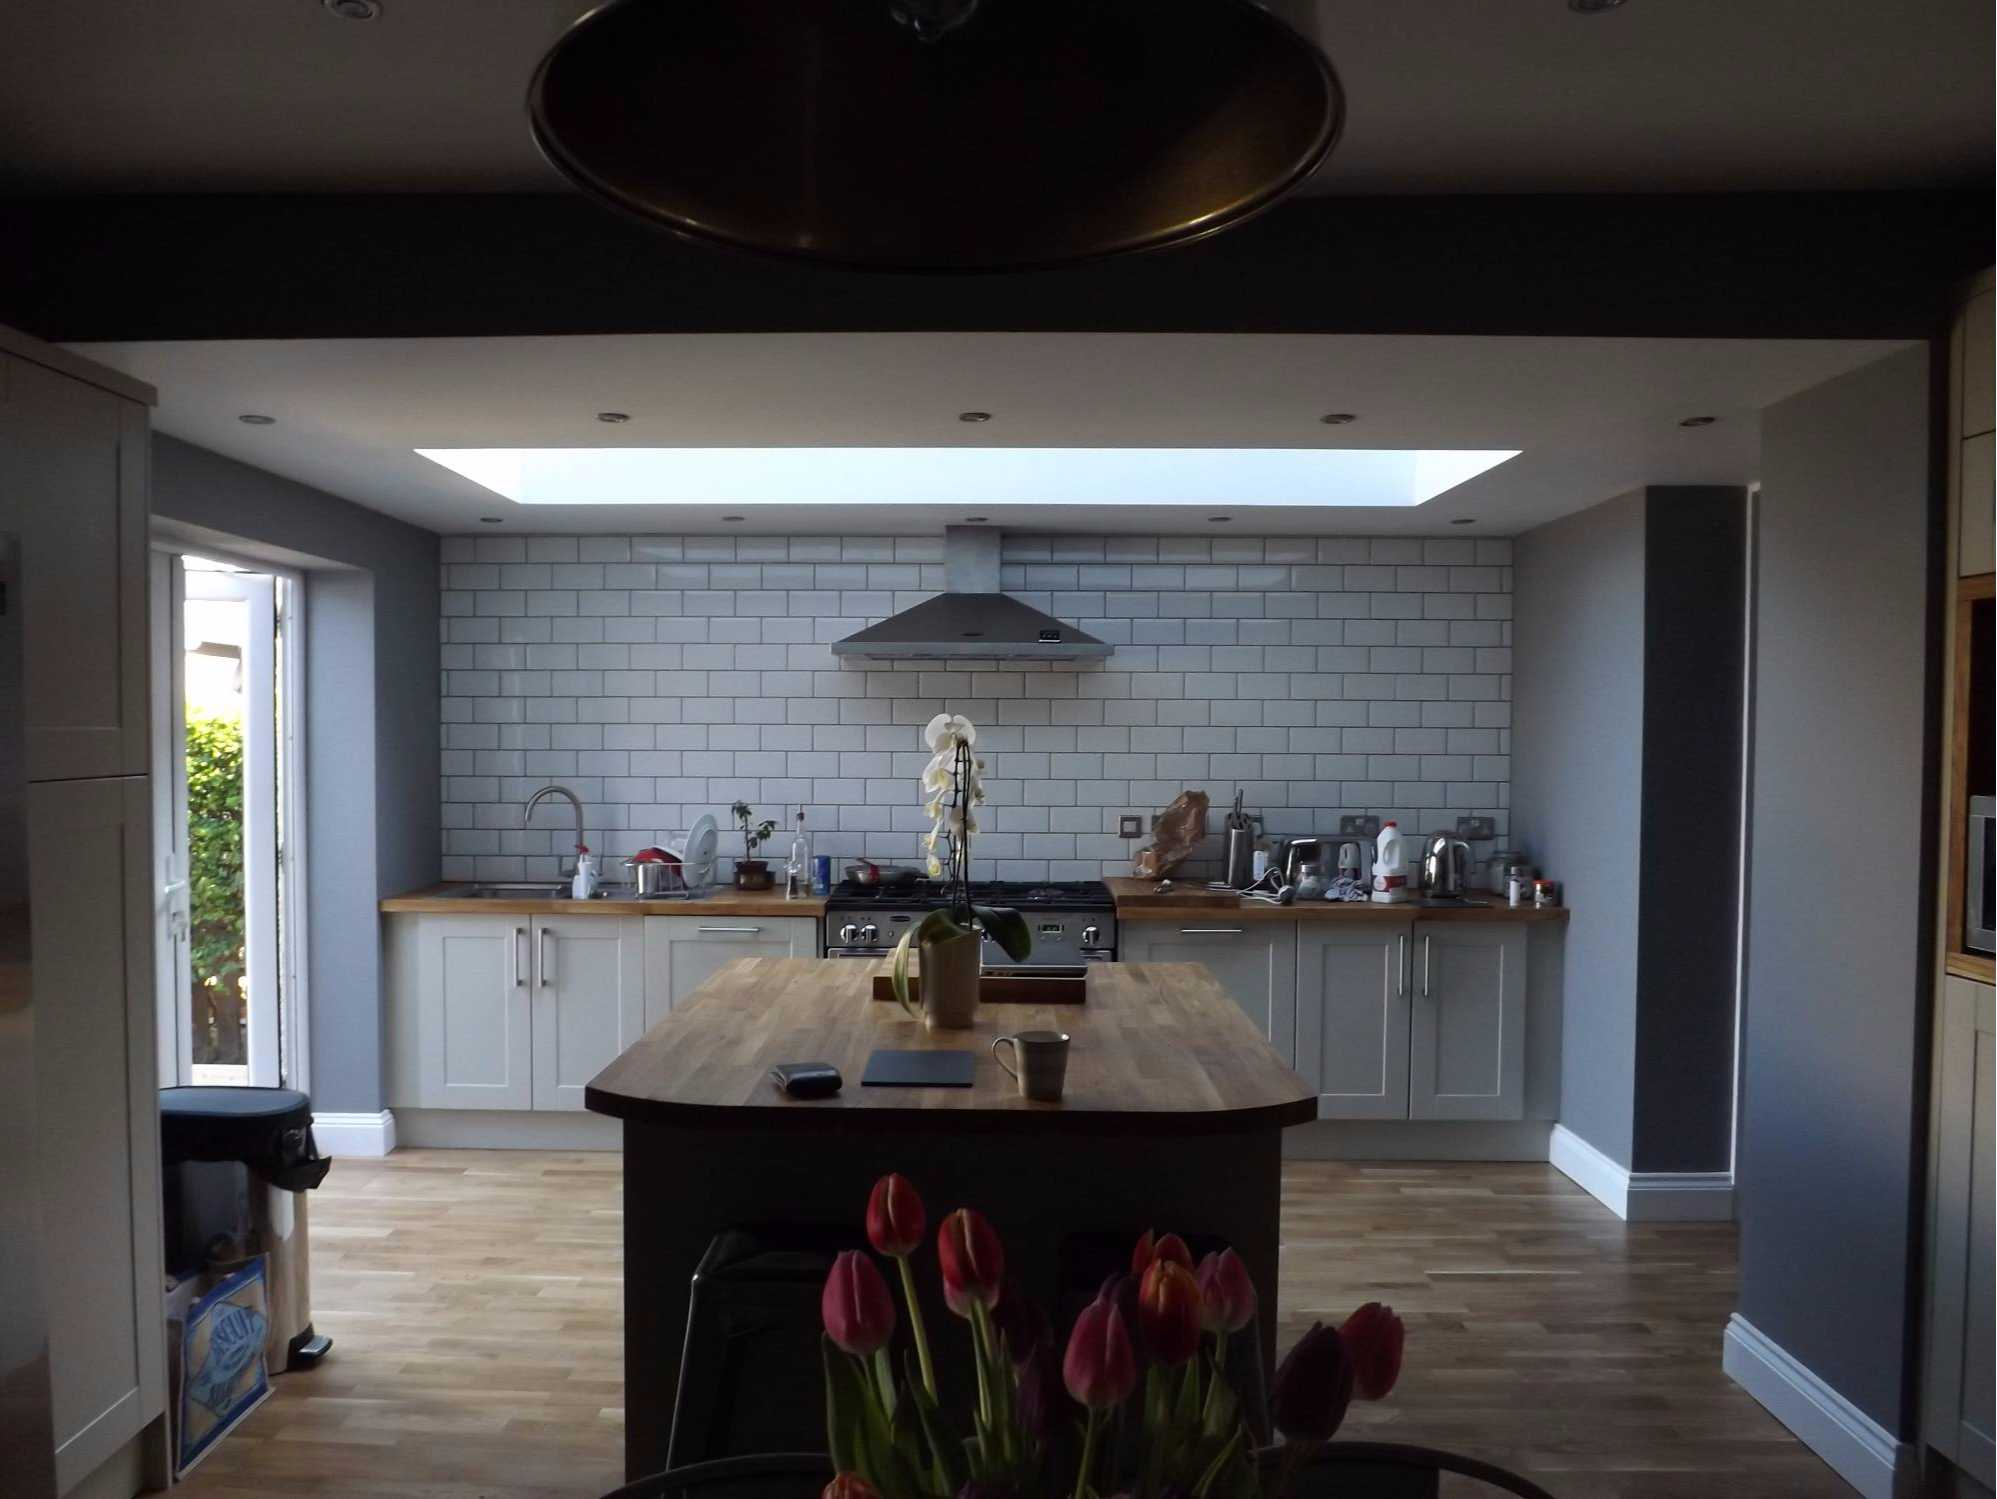 professionally designed kitchen by ph williams, builders in north wales